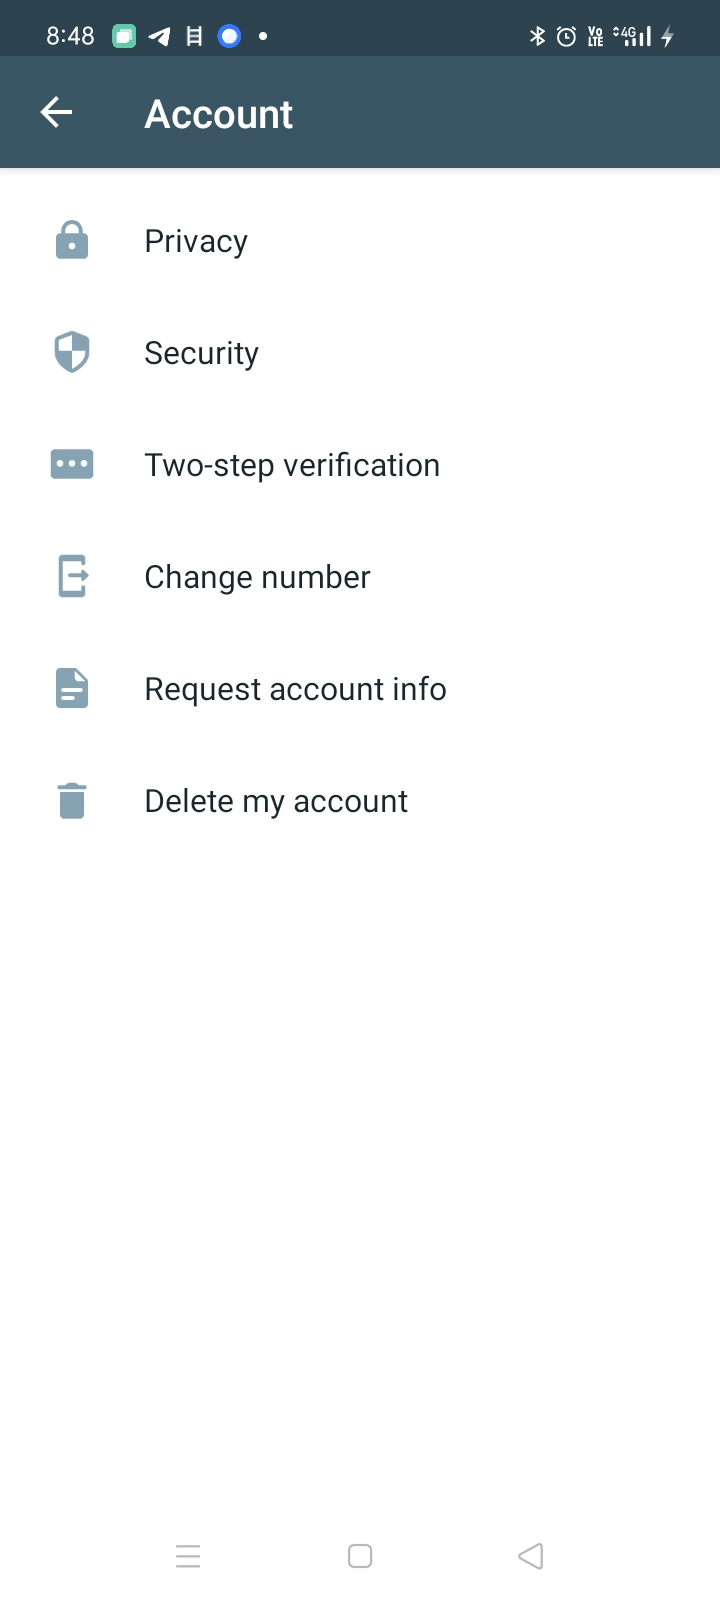 Tap on the Account option